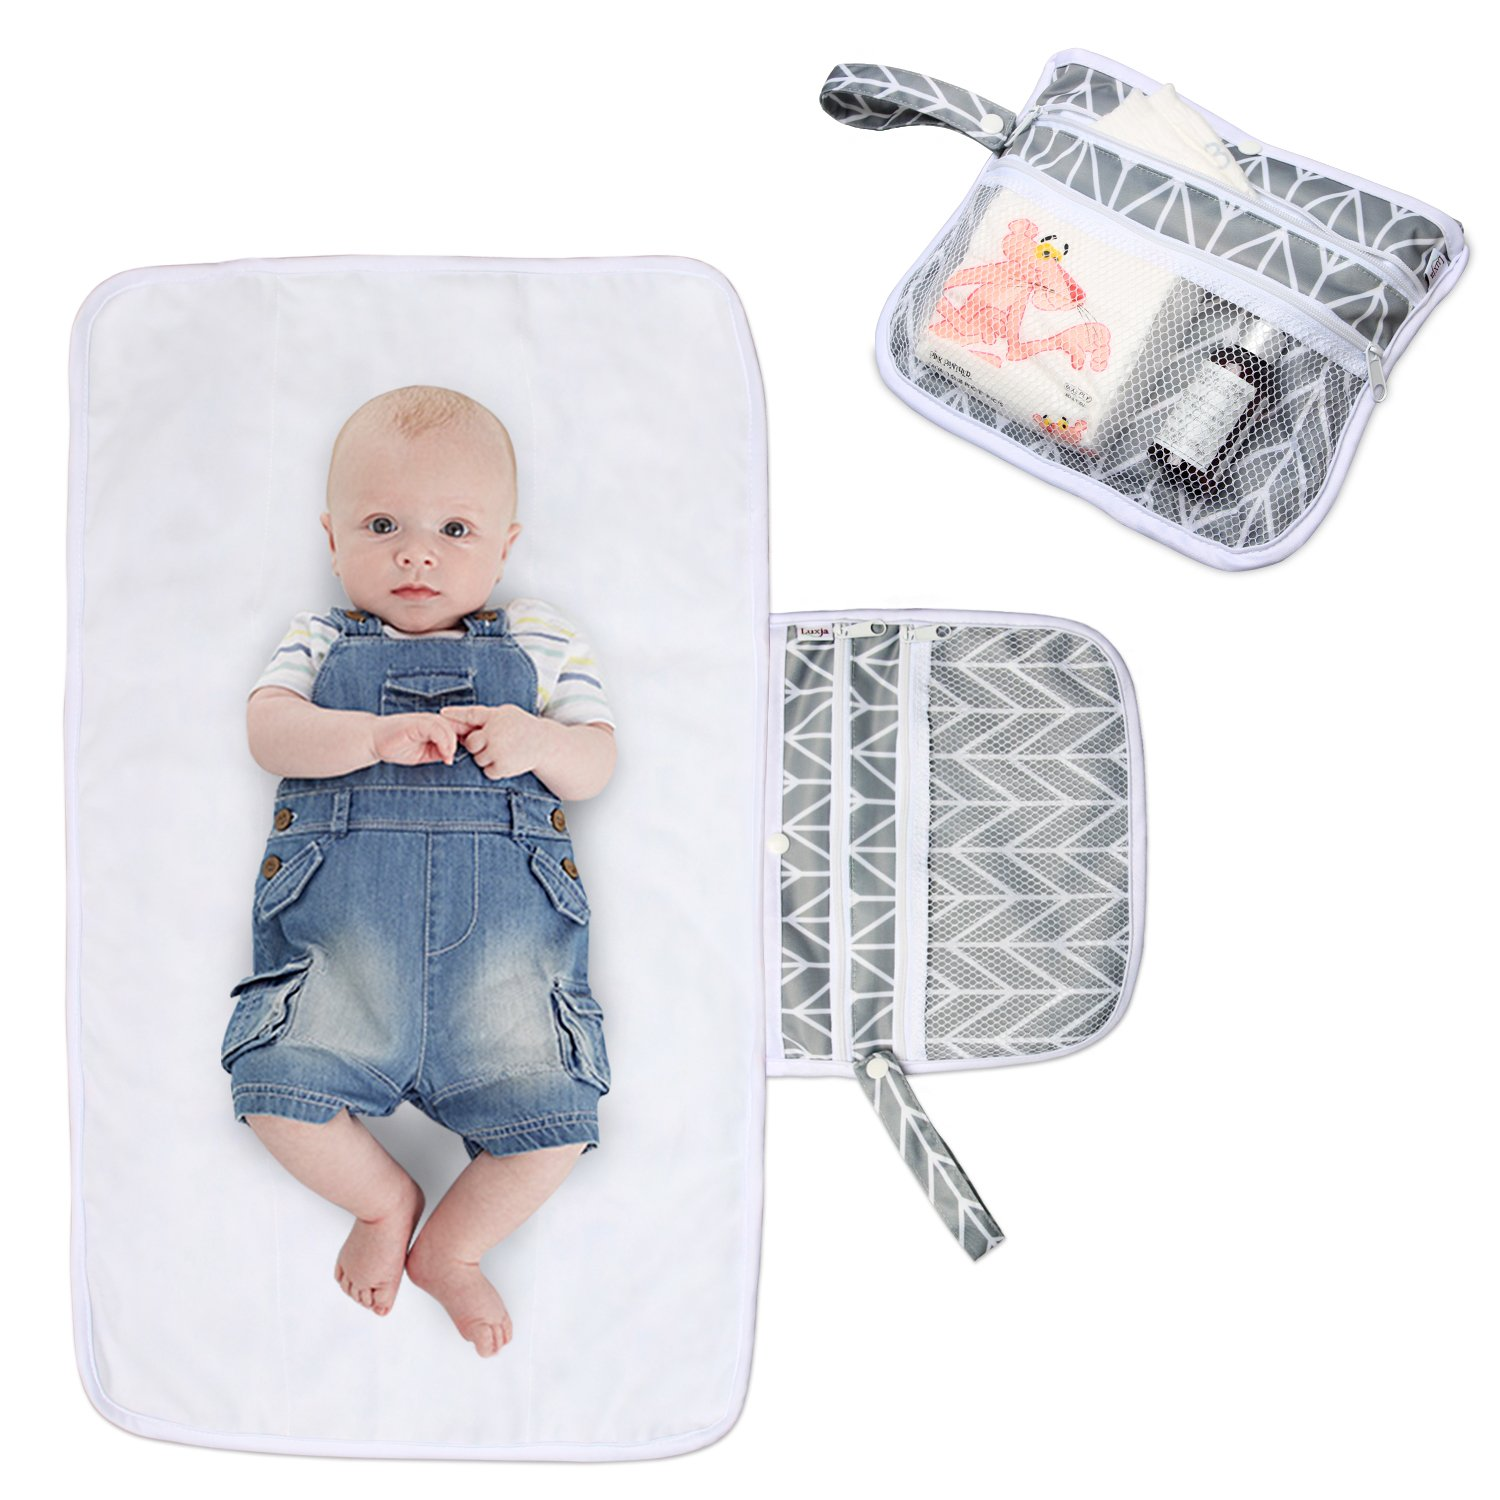 Luxja Portable Nappy Changing Mat (NON-BULKY), Baby Changing Mat with Pockets, Baby Changing Pad for Home or Travel Use, Foldable and Machine Washable, Grey Chevron